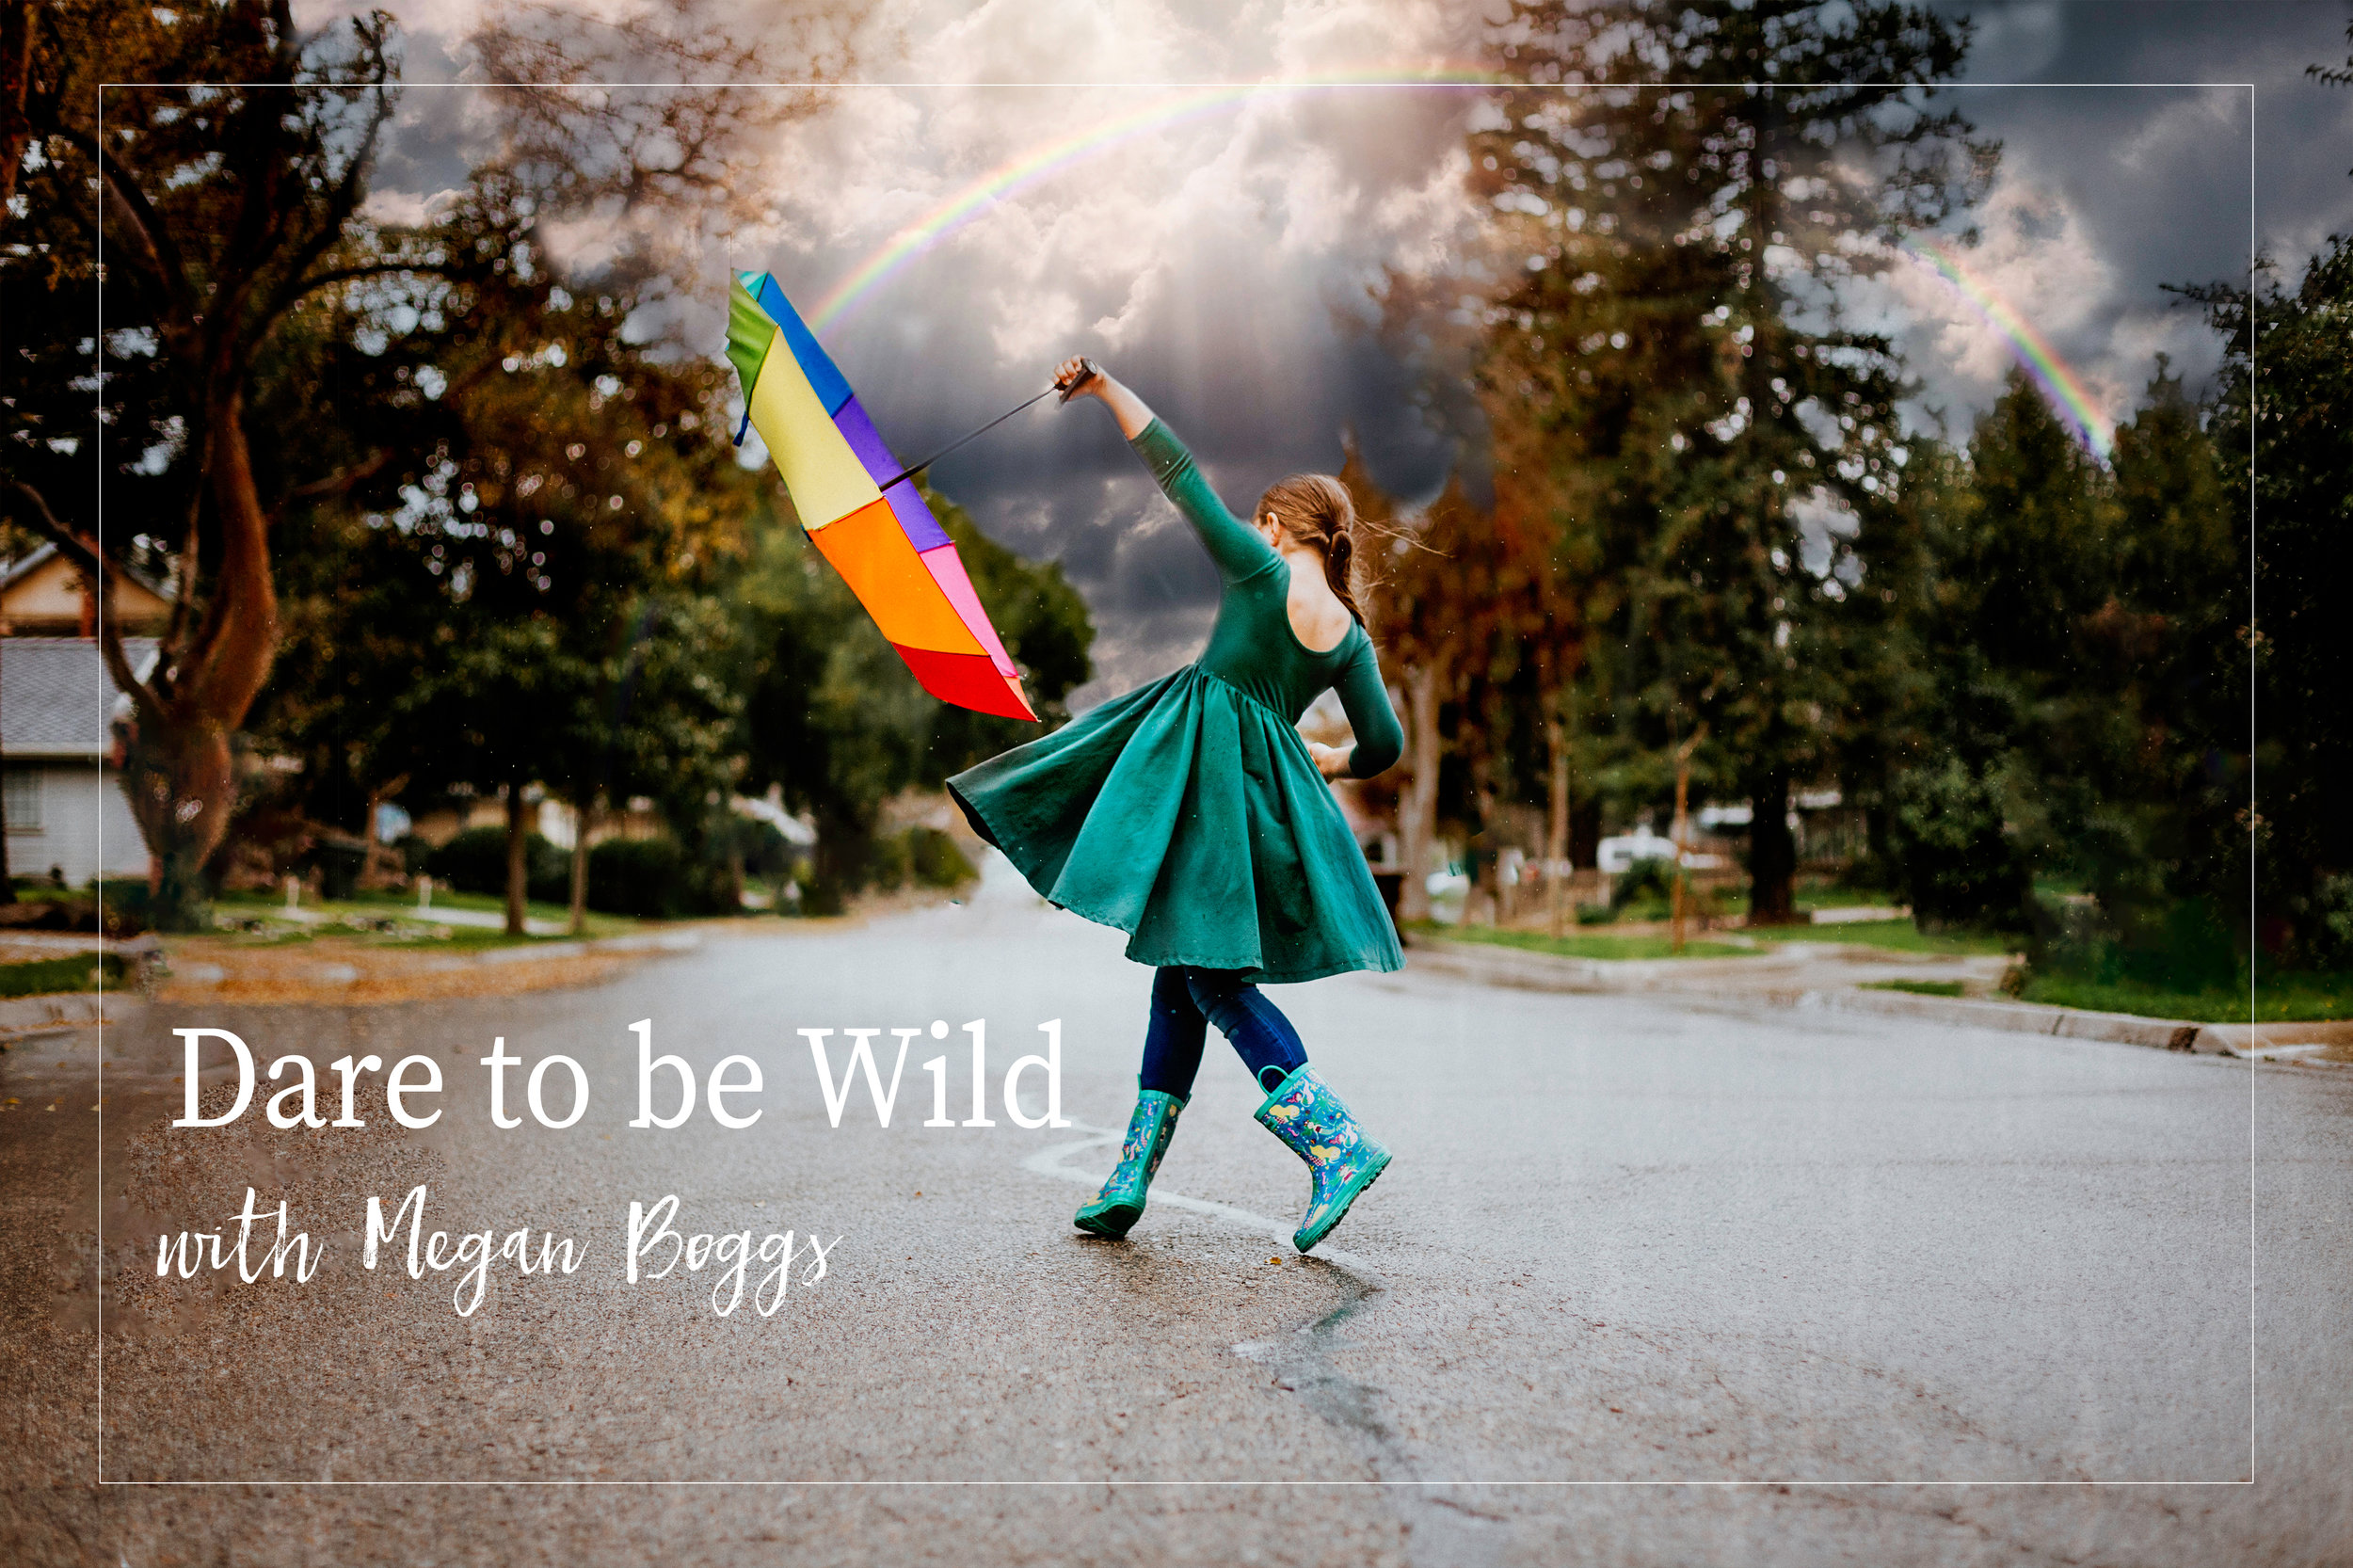 Dare to be Wild - with Megan Boggs